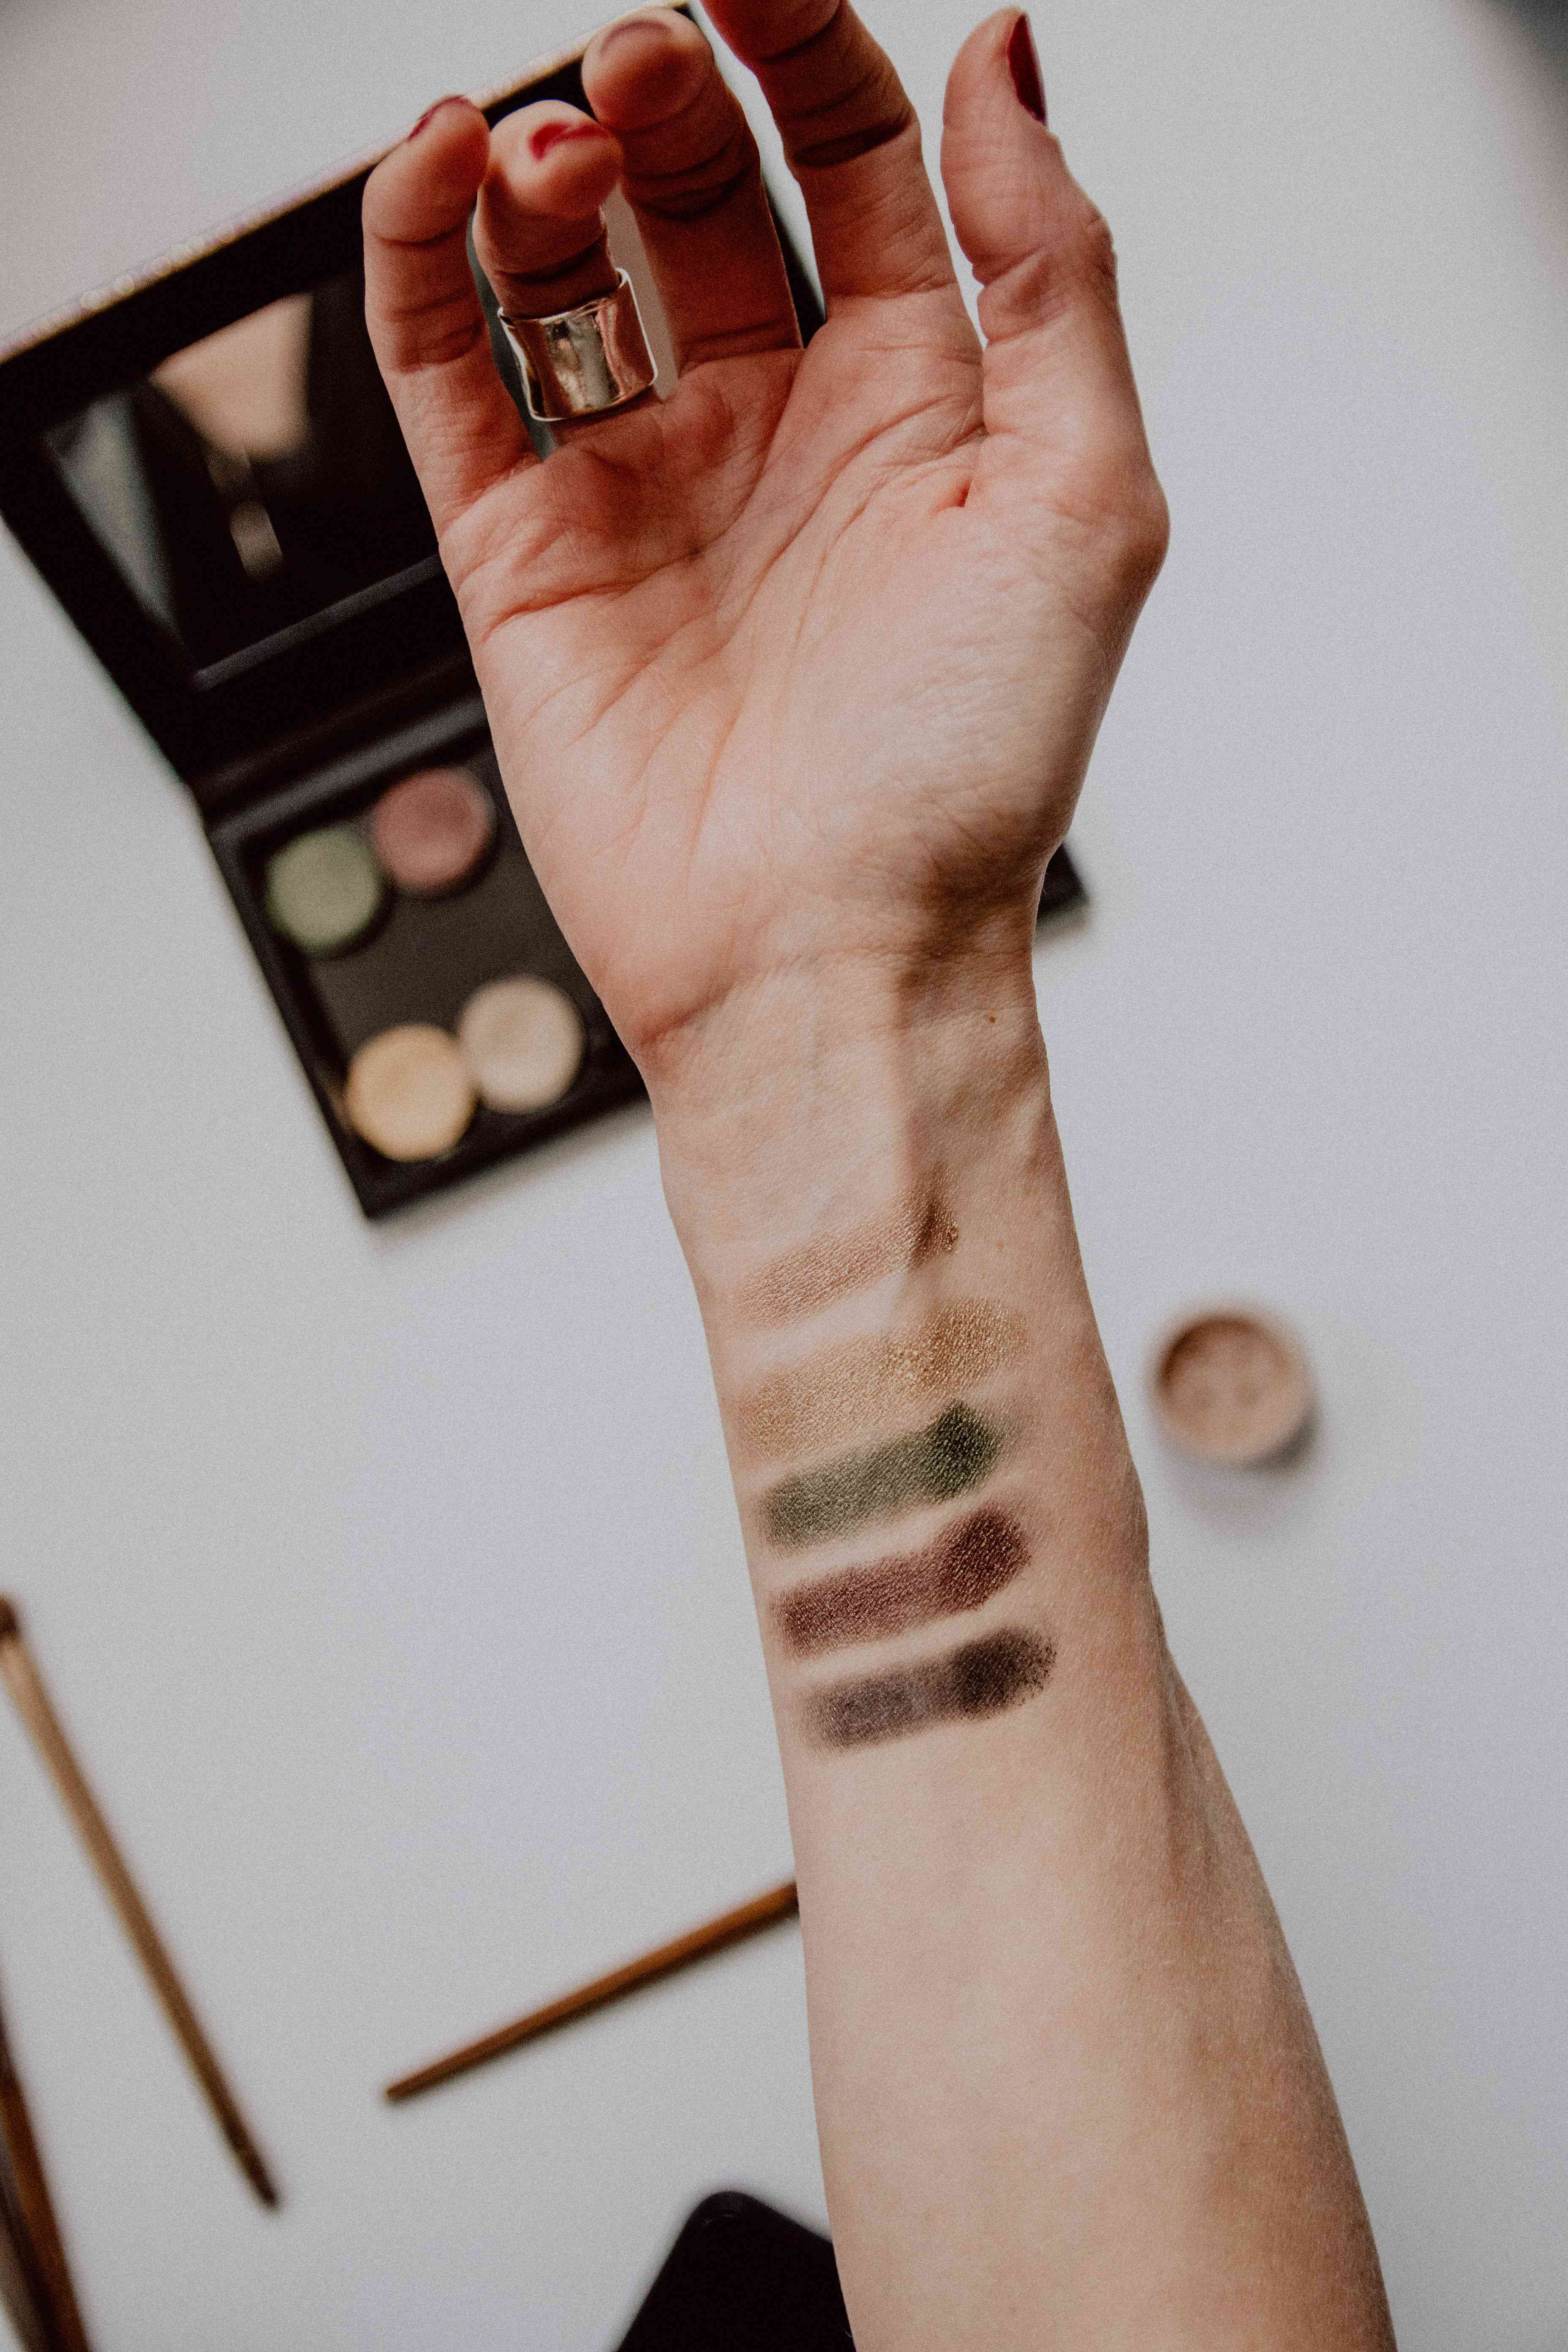 eyeshadow swatches on forearm